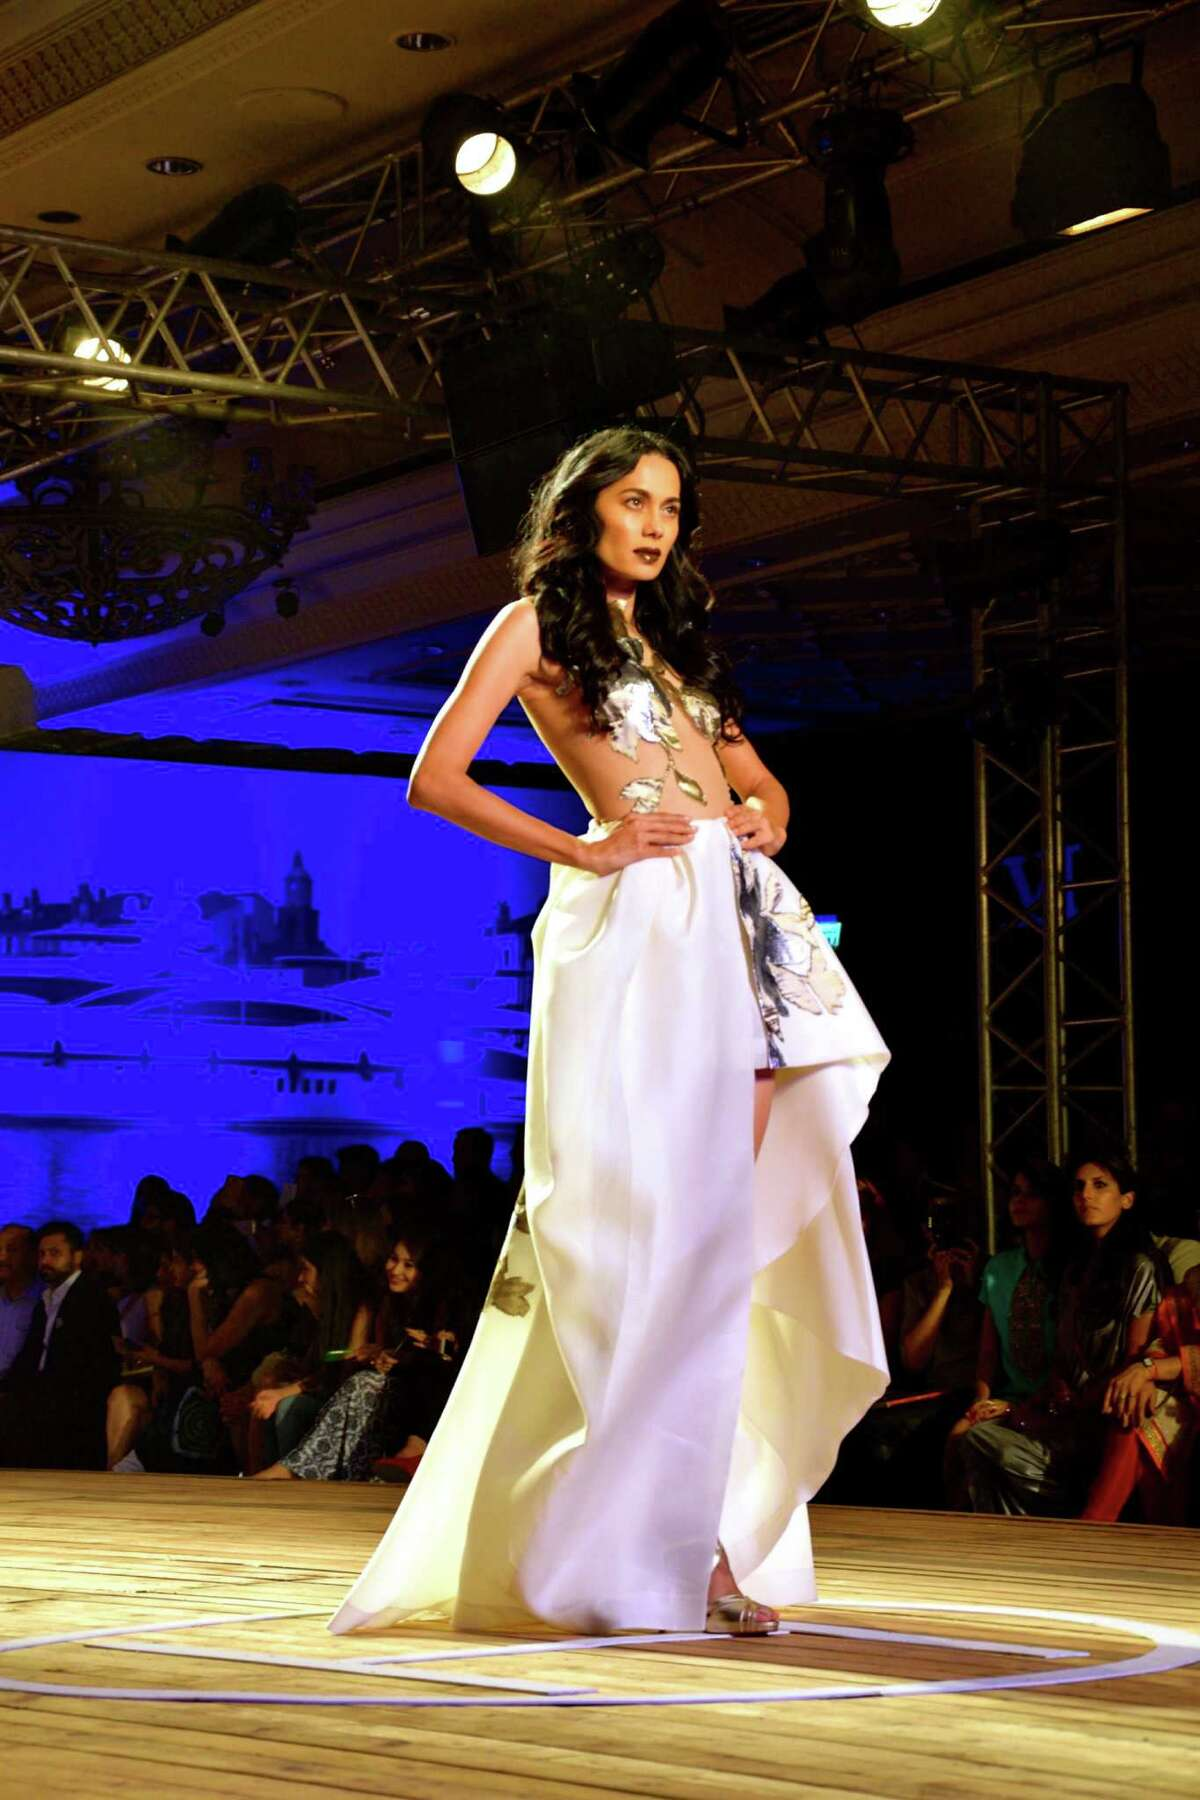 Monisha Jaising's couture collection for the Fashion Design Council of India's (FDCI) Amazon India Couture Week 2015 on day three centered around a nautical theme called The Sailing Bride at the Taj Palace Hotel in New Delhi, India.